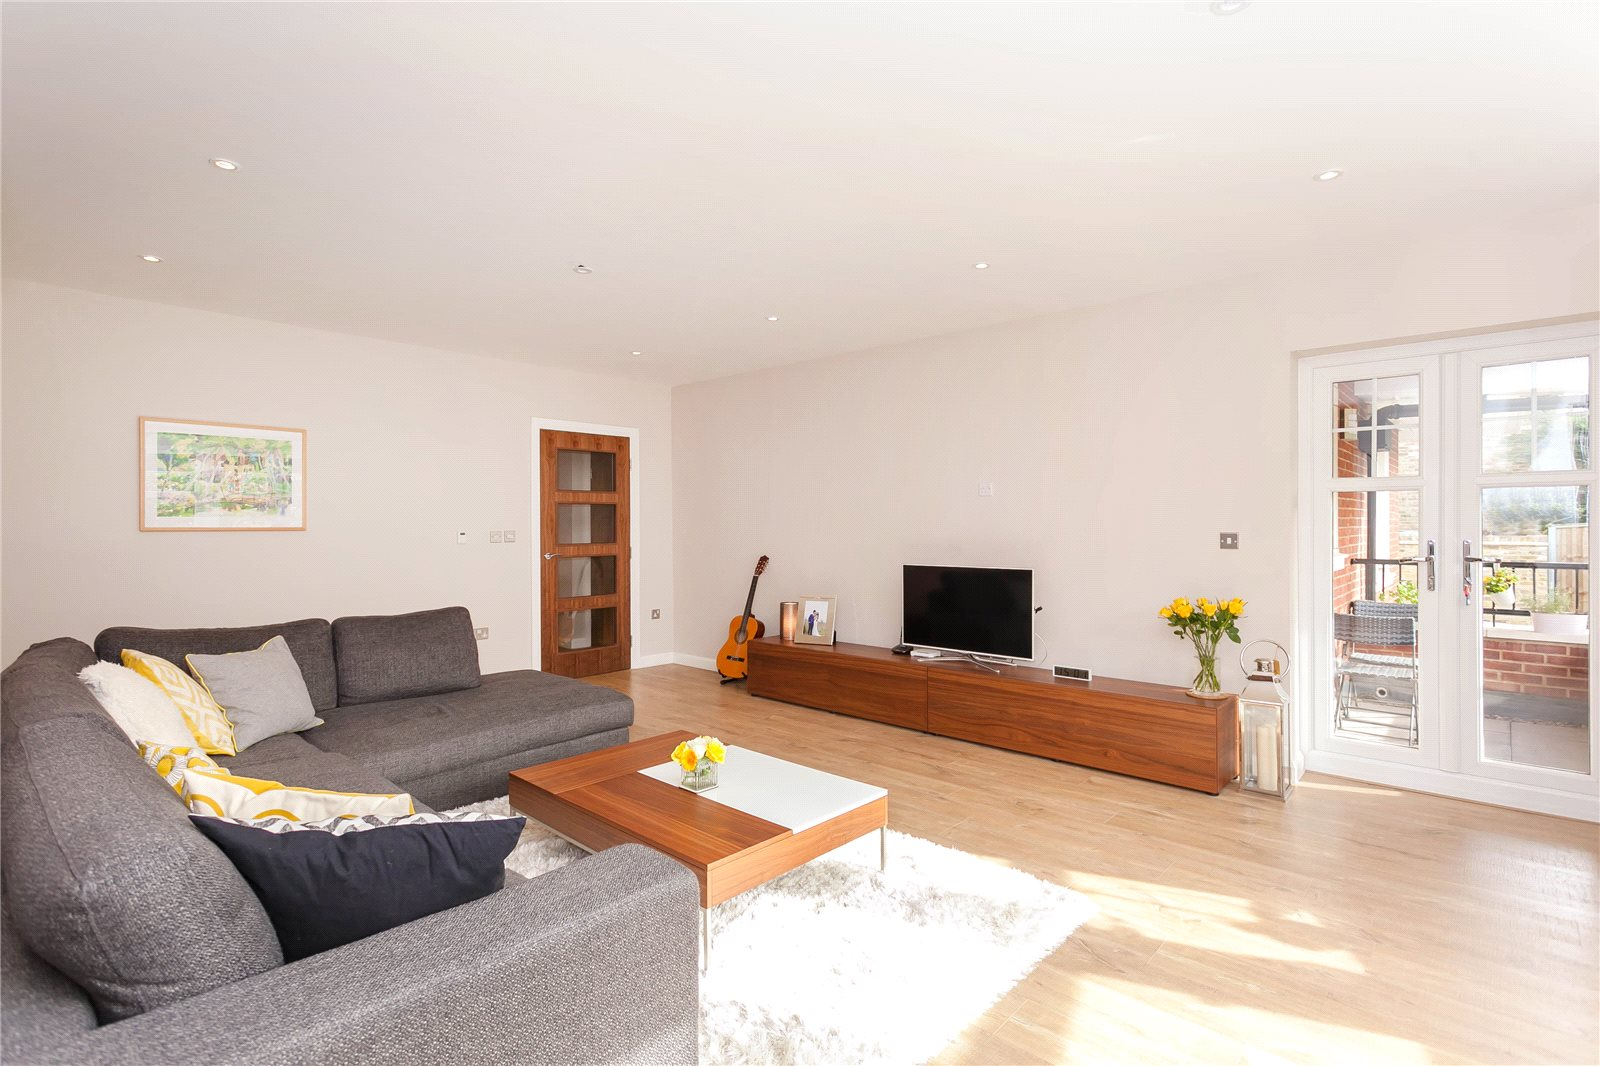 Additional photo for property listing at Baytrees, 20 South Park View, Gerrards Cross, Buckinghamshire, SL9 Gerrards Cross, England